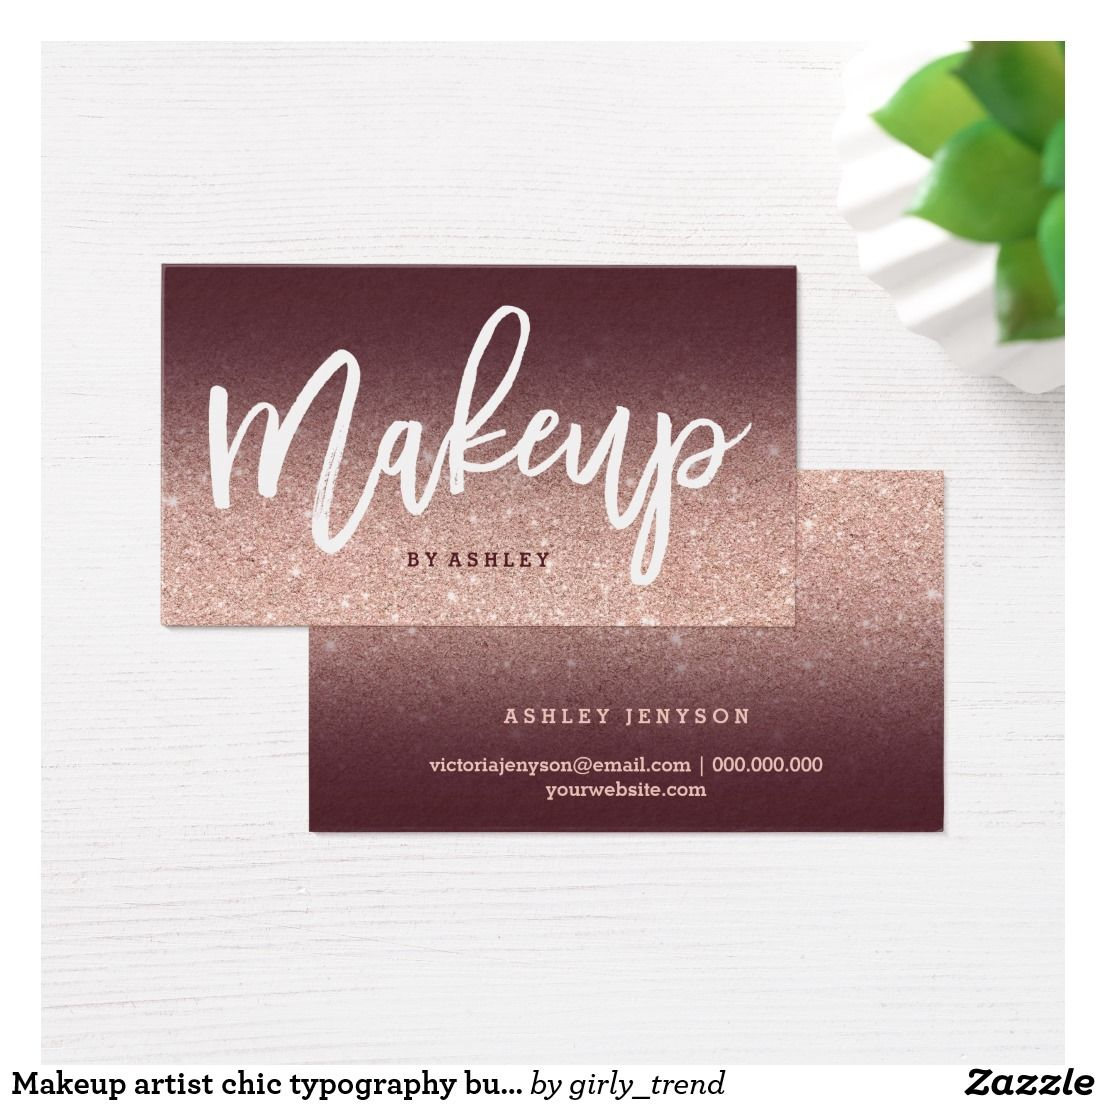 Makeup artist chic typography burgundy rose gold business card makeup artist chic typography burgundy rose gold business card magicingreecefo Images